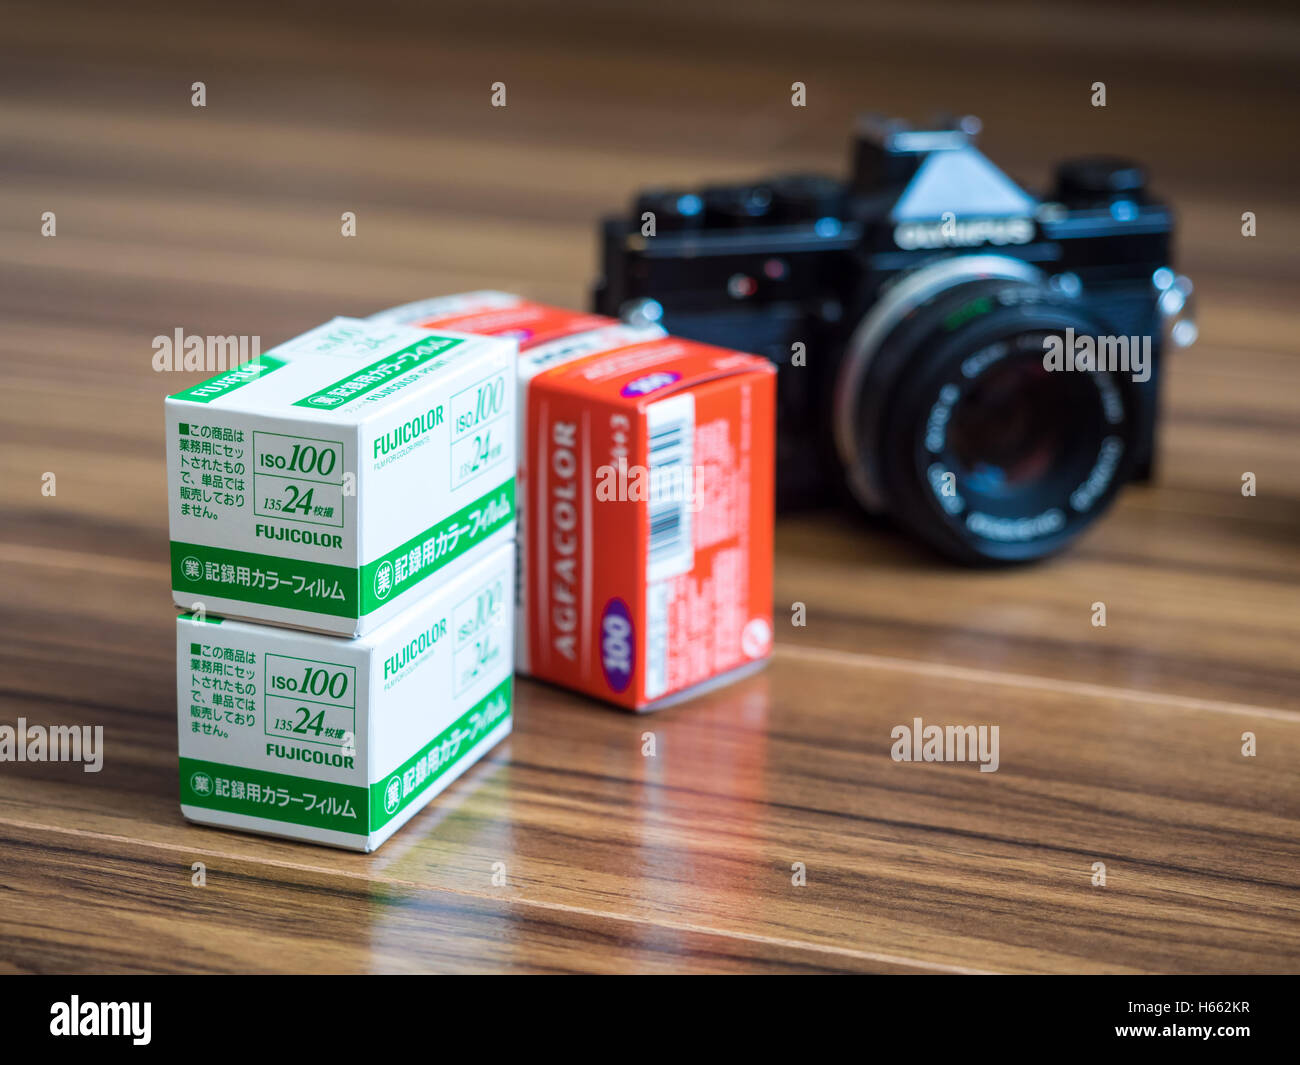 Analogue Photography. Fujicolor and Agfacolor 35mm film rolls and old Olympus SLR film camera. - Stock Image